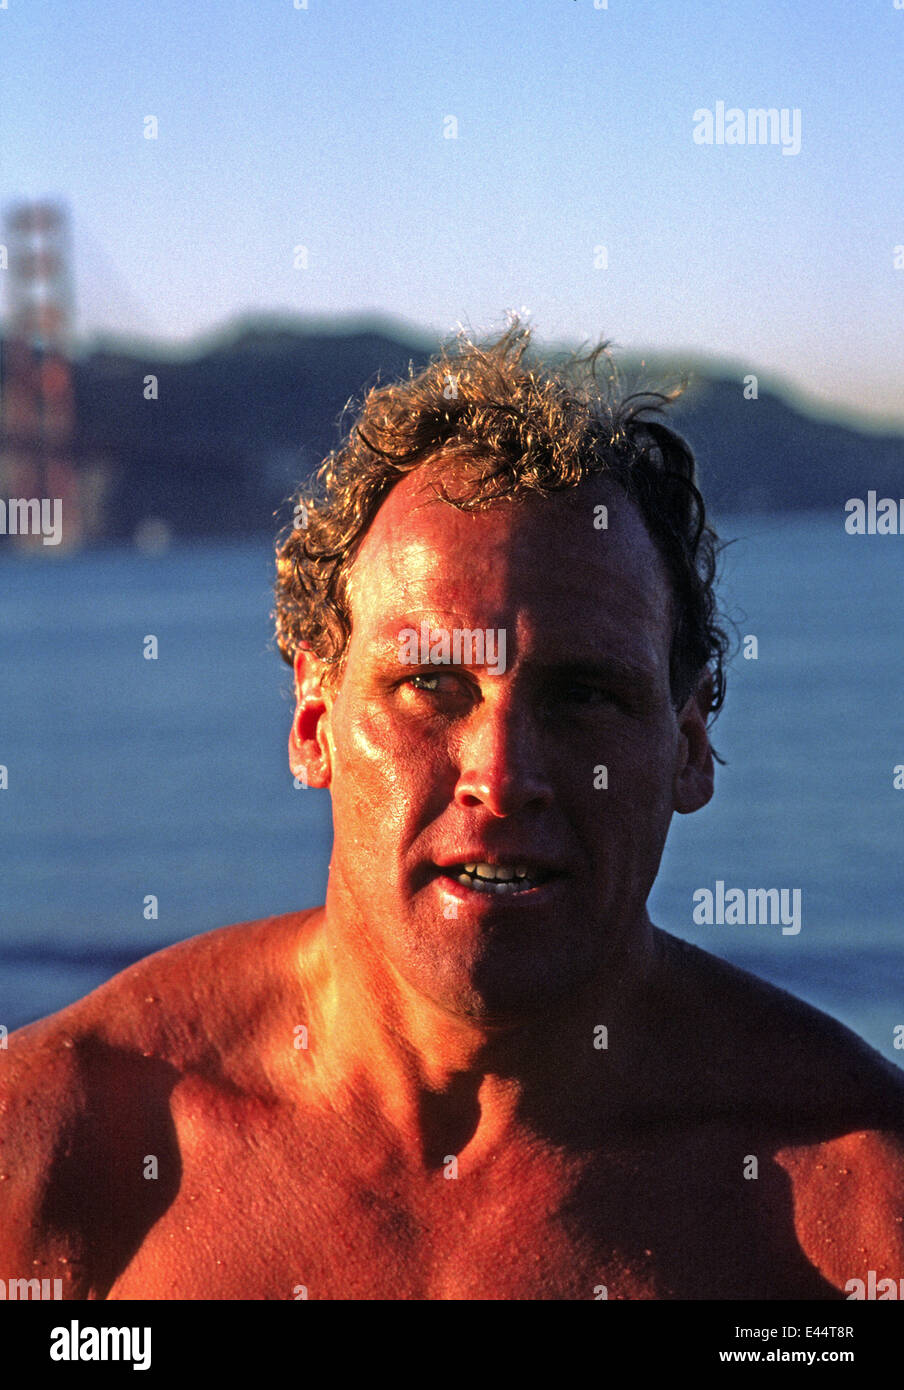 Dave Horning after swim in San Francisco Bay in 1985 - Stock Image